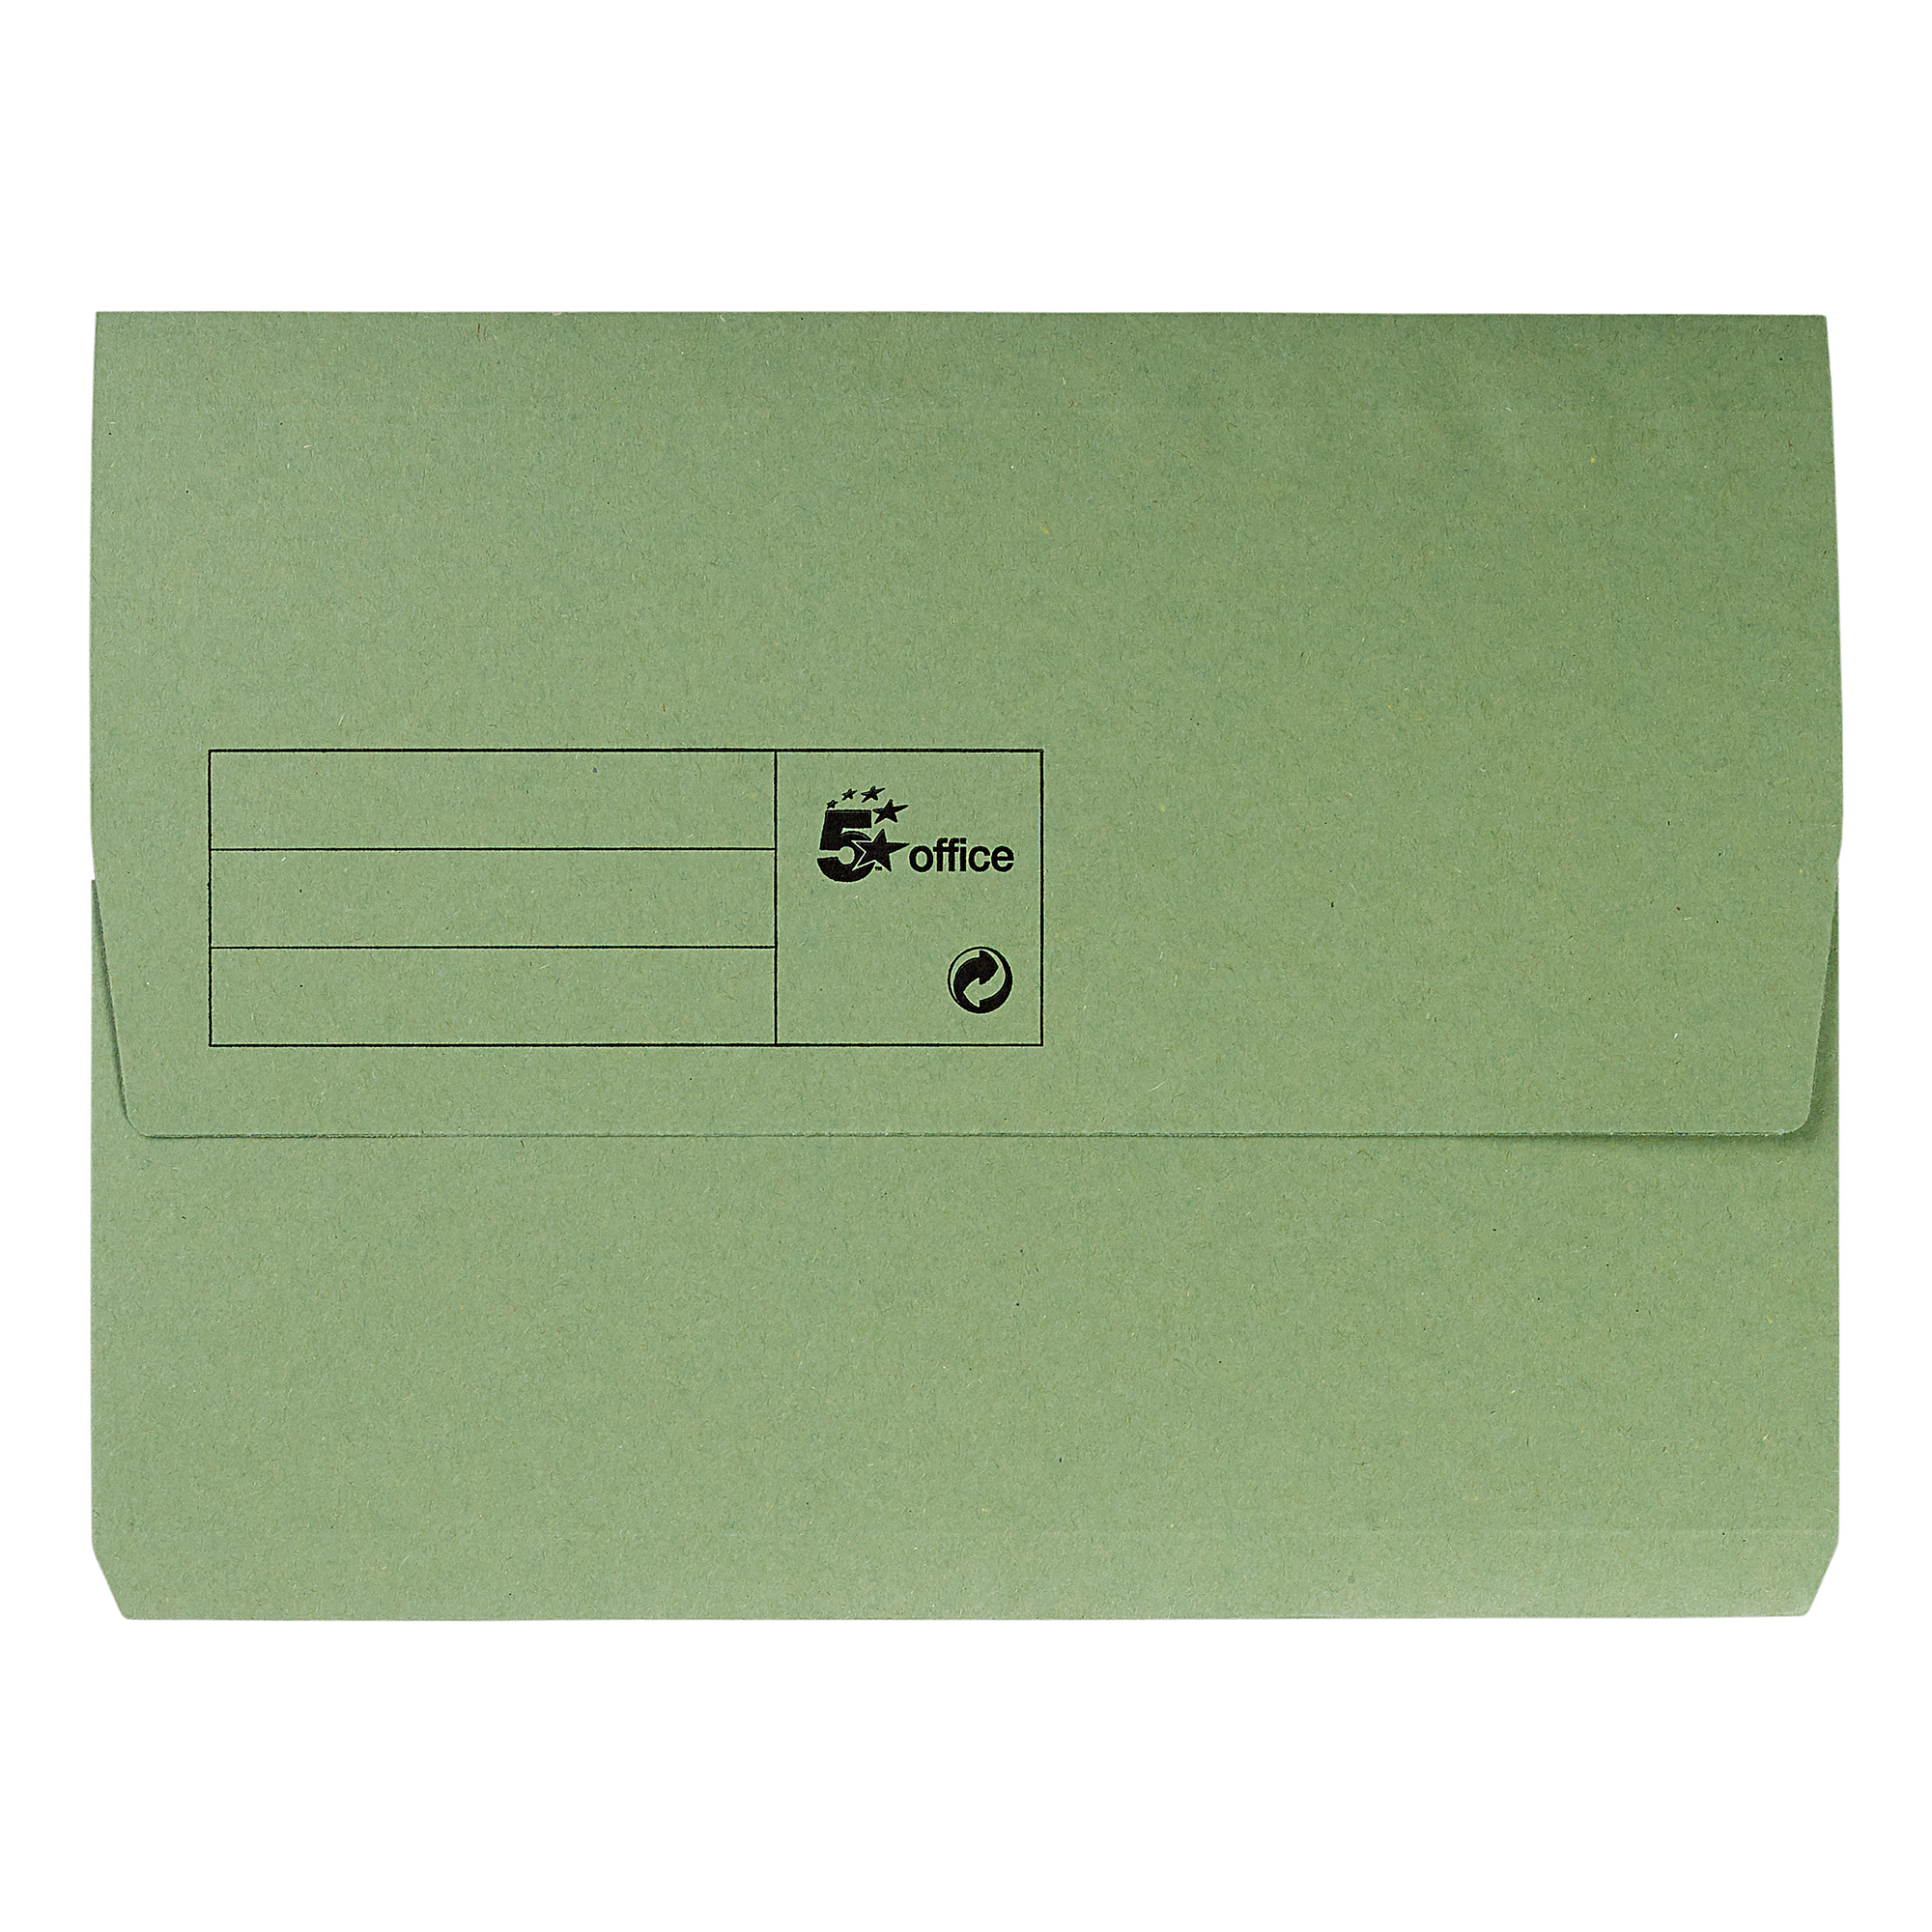 Document Wallets 5 Star Office Document Wallet Half Flap 285gsm Recycled Capacity 32mm A4 Green Pack 50